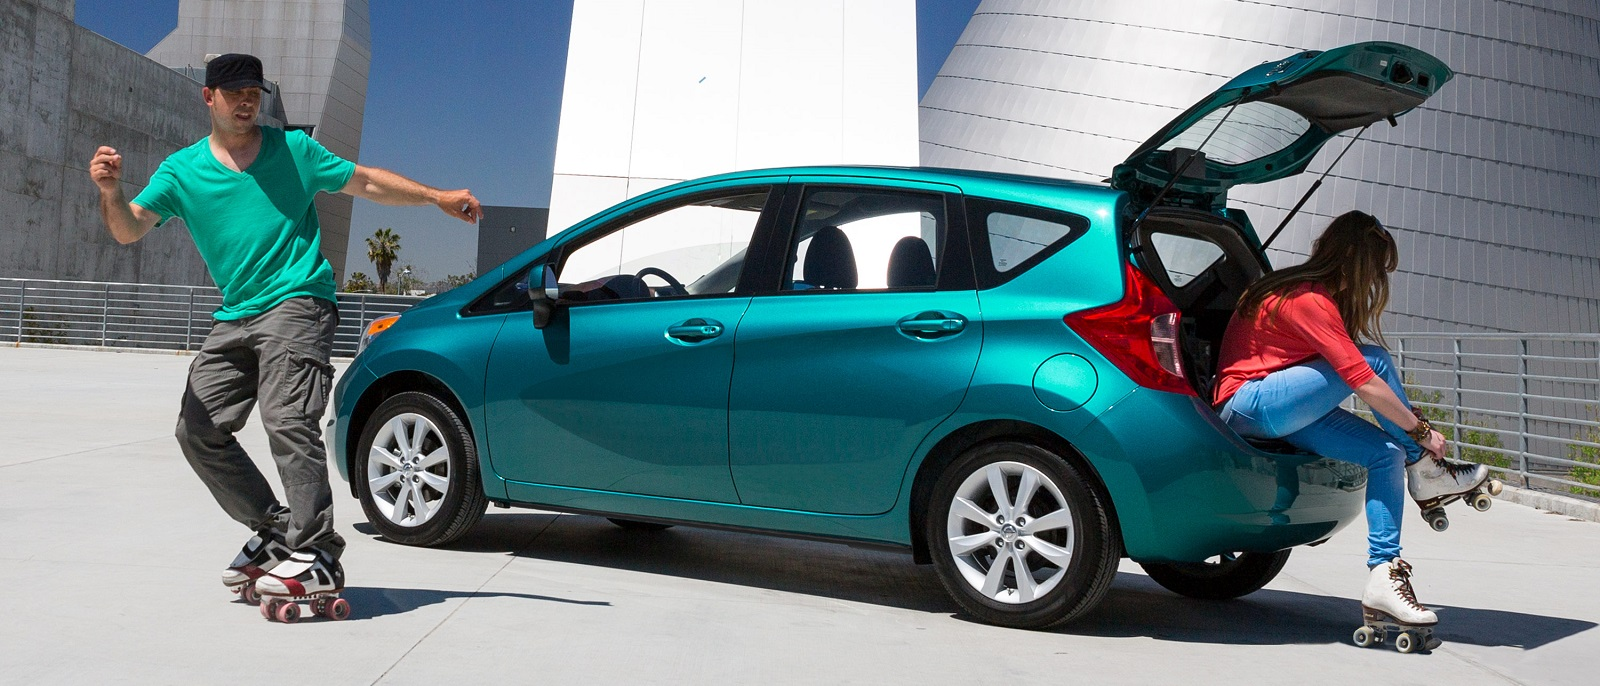 Nissan Dealership Indianapolis >> 2017 Nissan Versa Note Changes Coming to Indianapolis